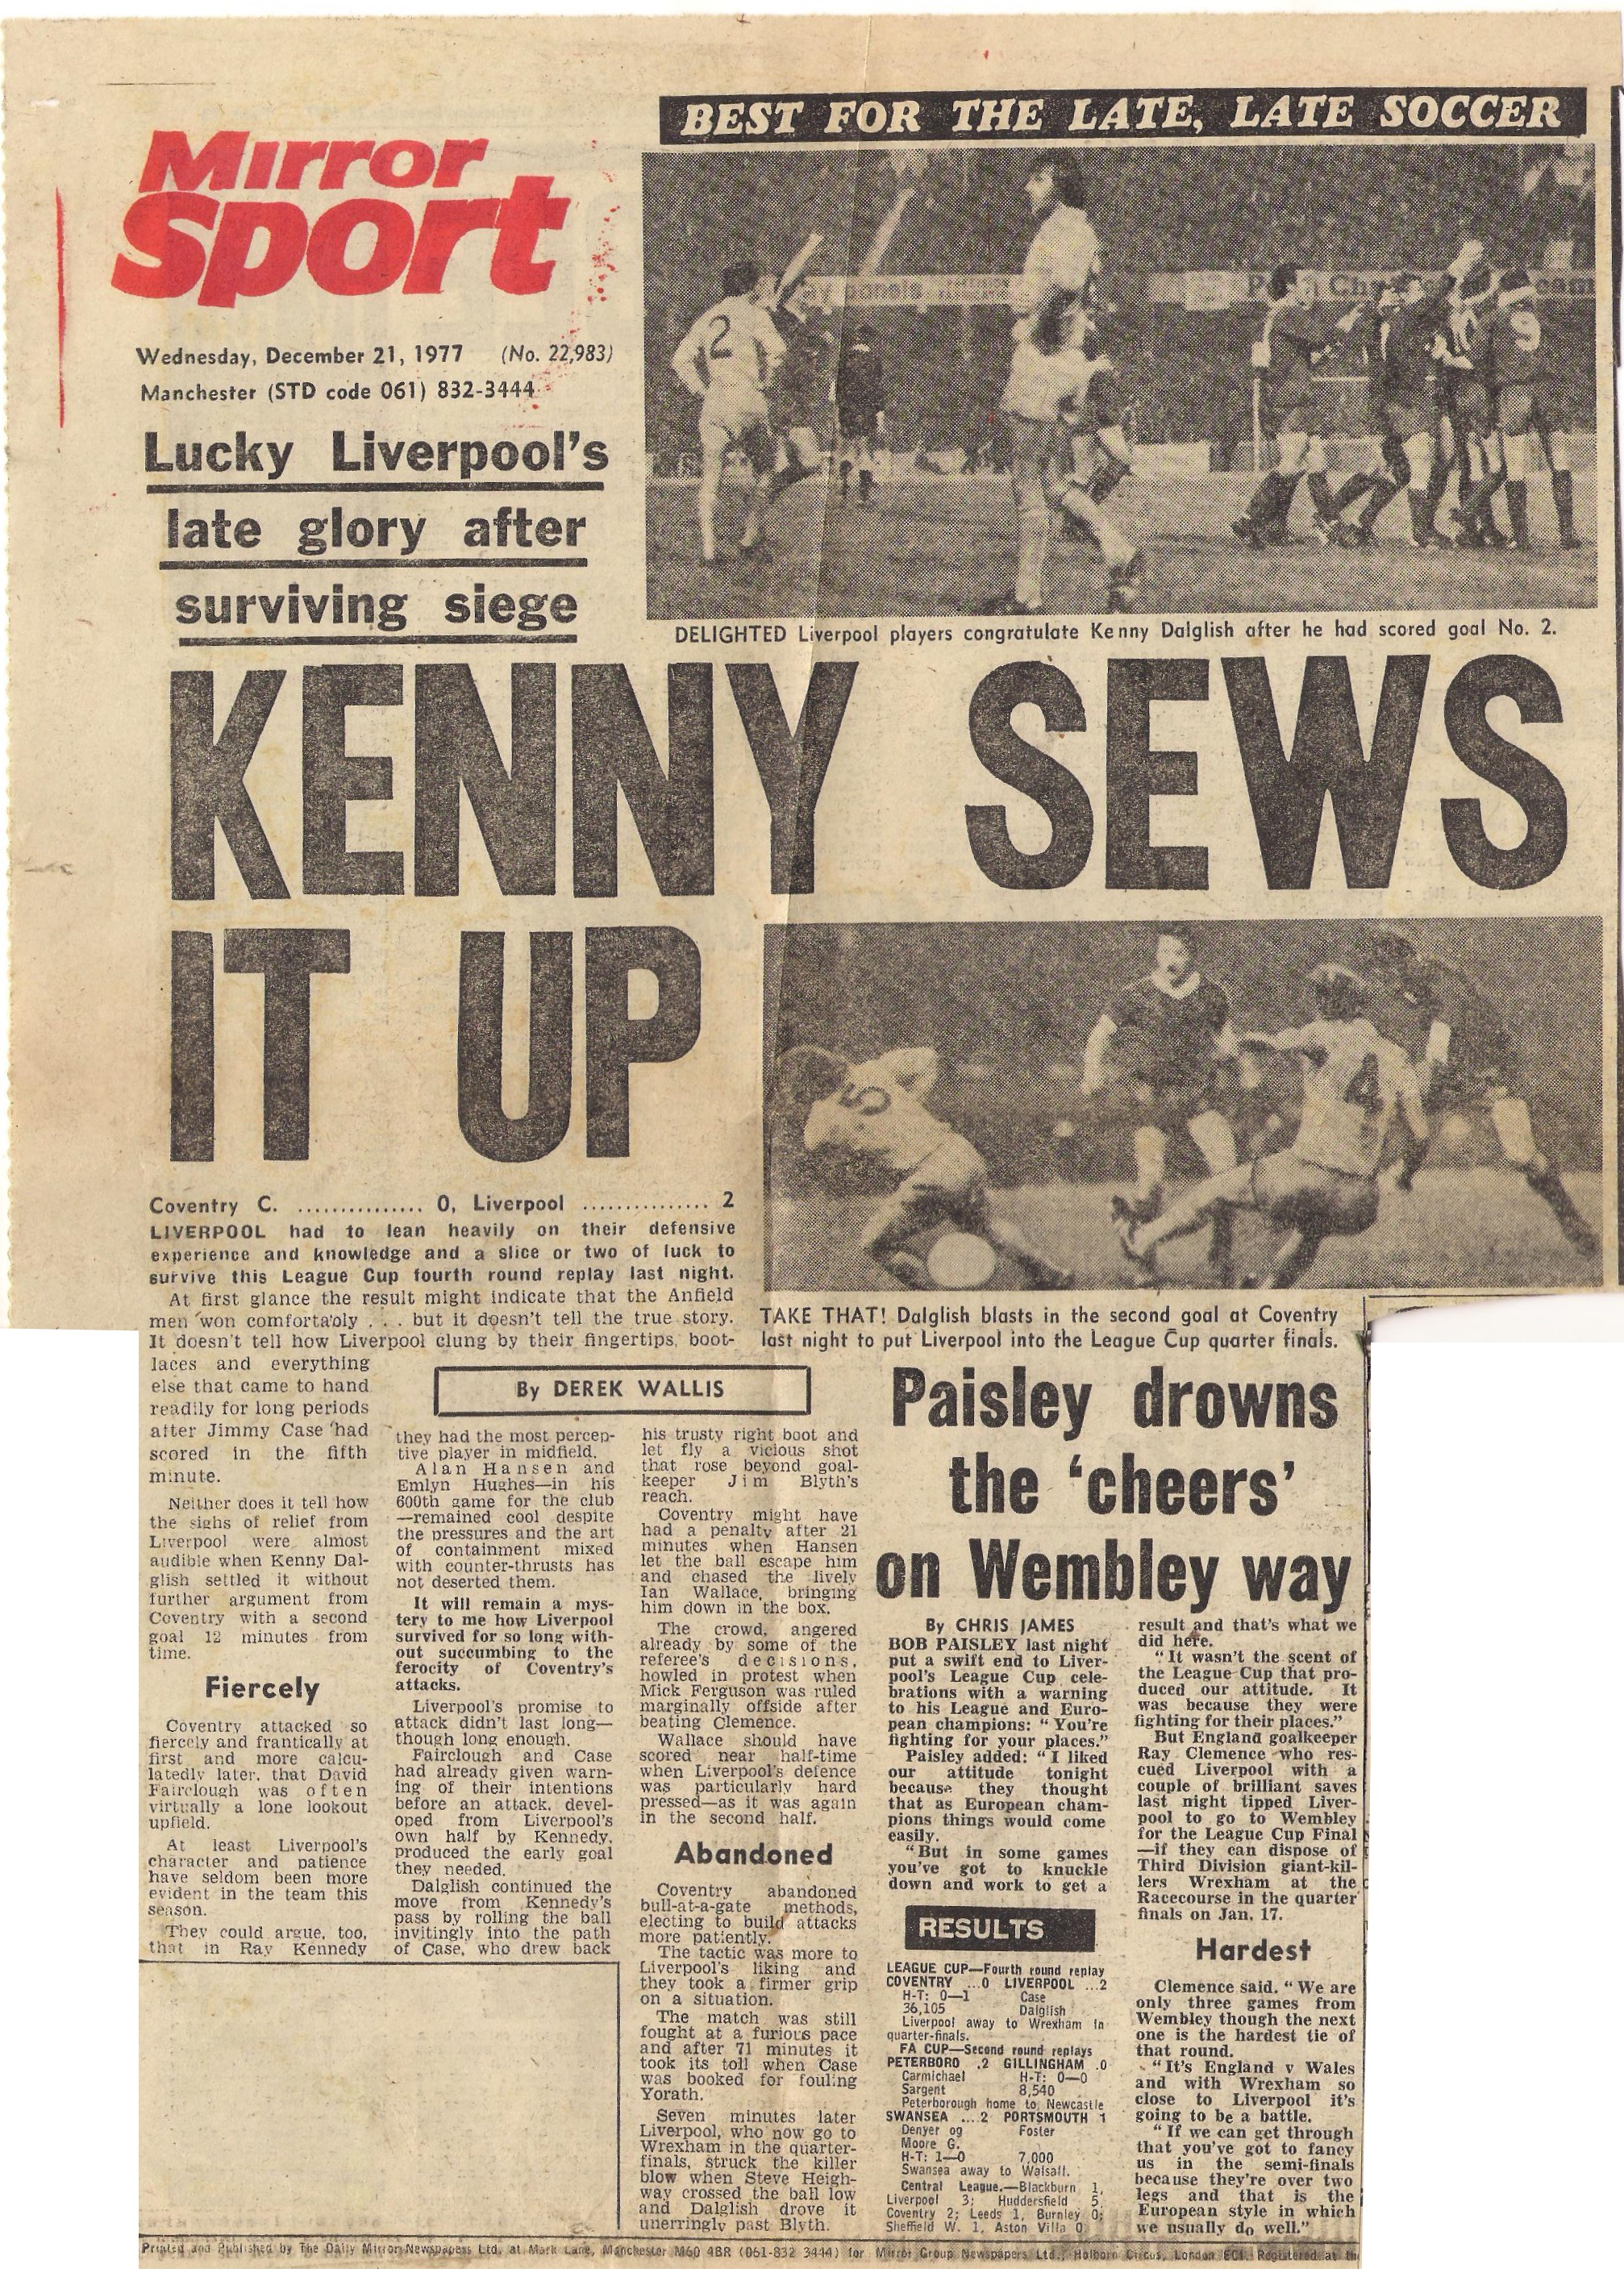 Kenny sews it up! - 20 December 1977